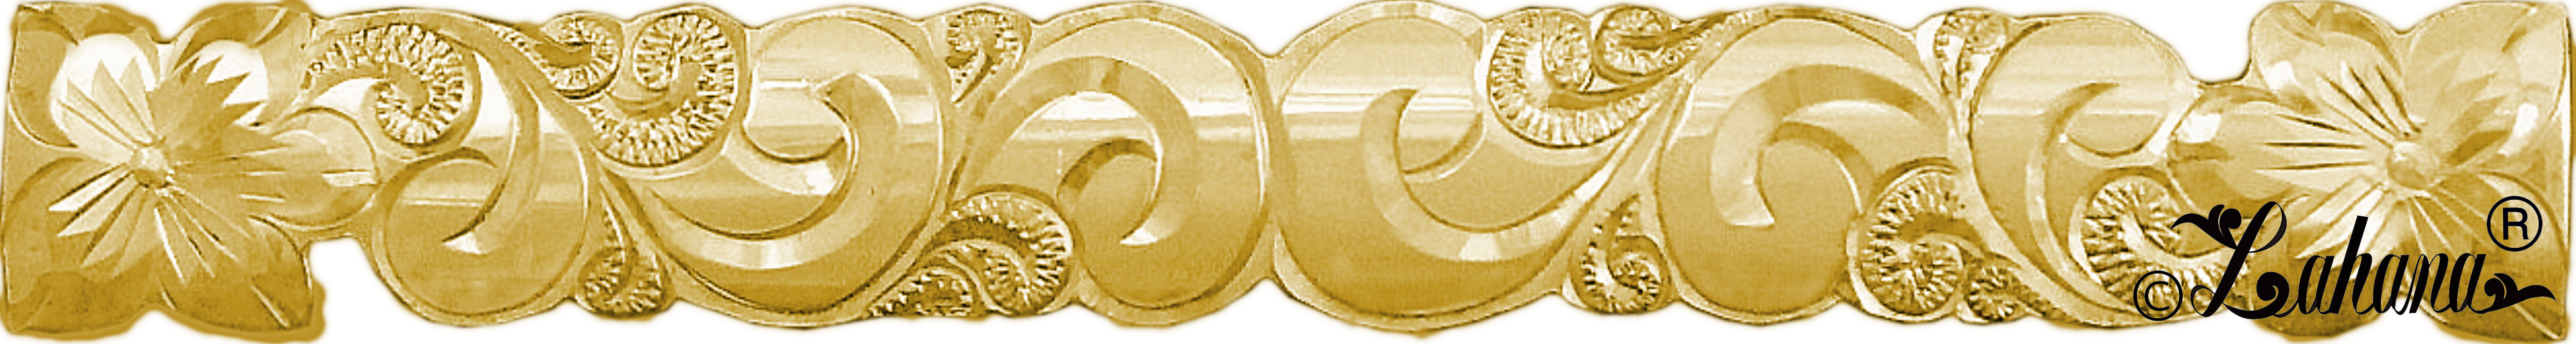 14k-sample-logo-ad-d.jpg